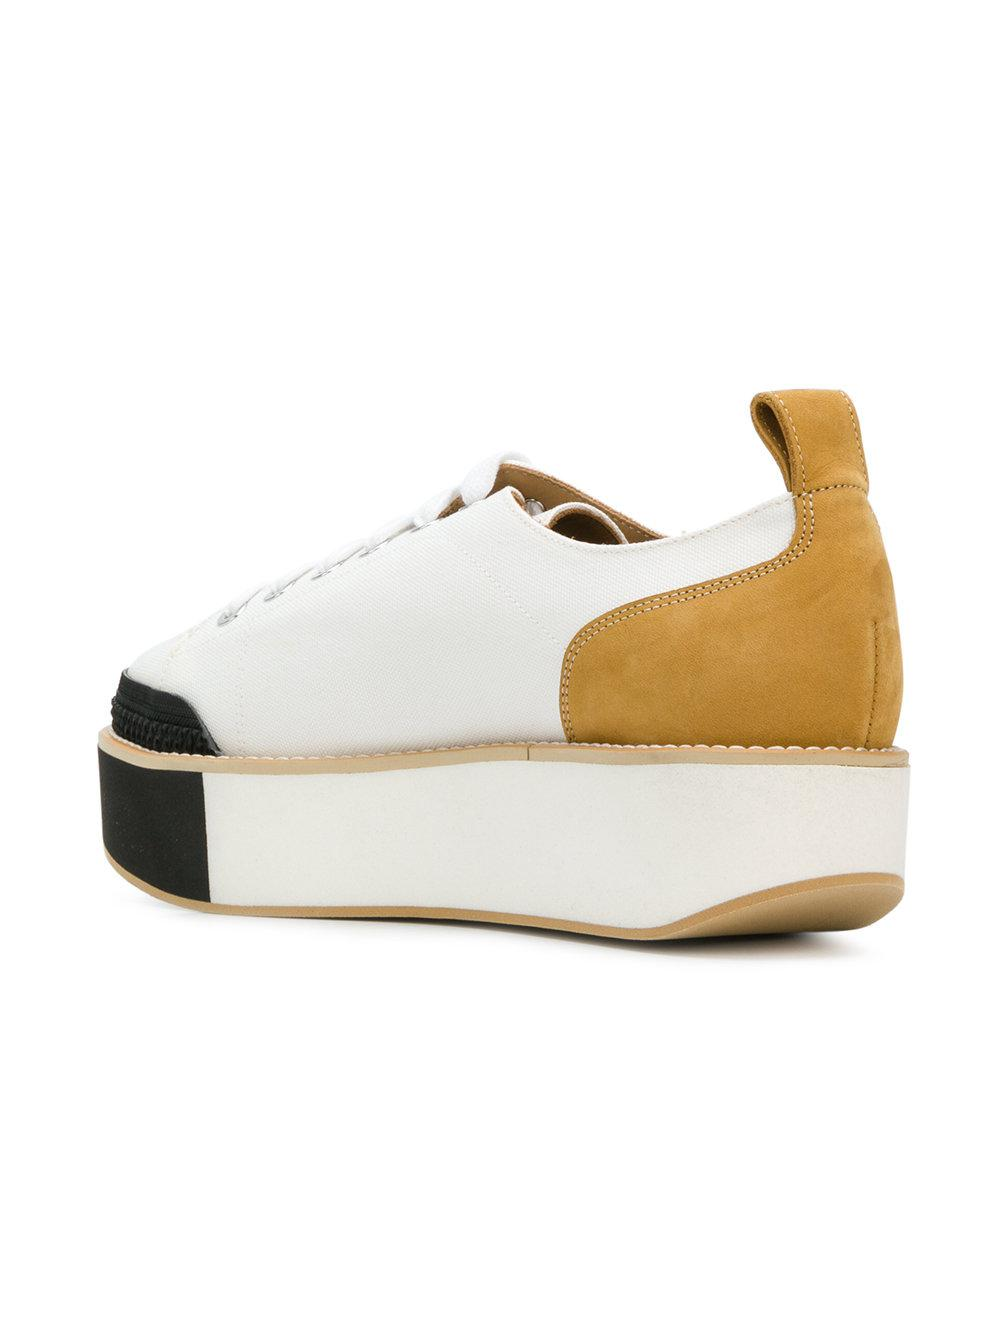 clearance get to buy free shipping fashion Style Flamingos block heel lace-up sneakers pay with visa cheap price discount Manchester for sale very cheap zk8E0xdjp